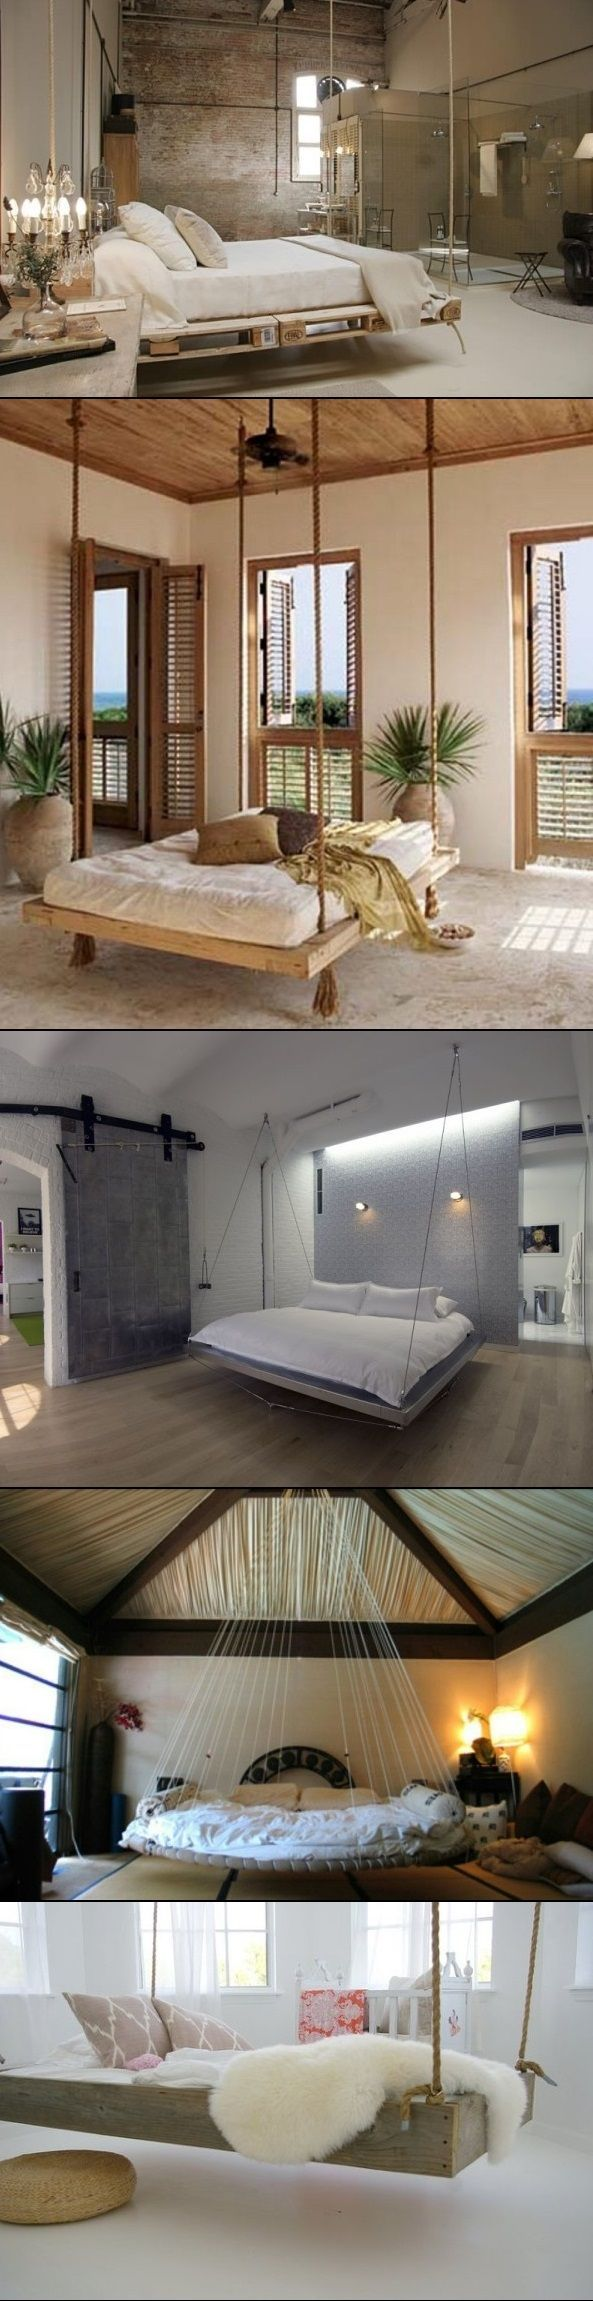 DIY hanging bedroom beds. I really want one of these, But you would have to have a large open bedroom.: